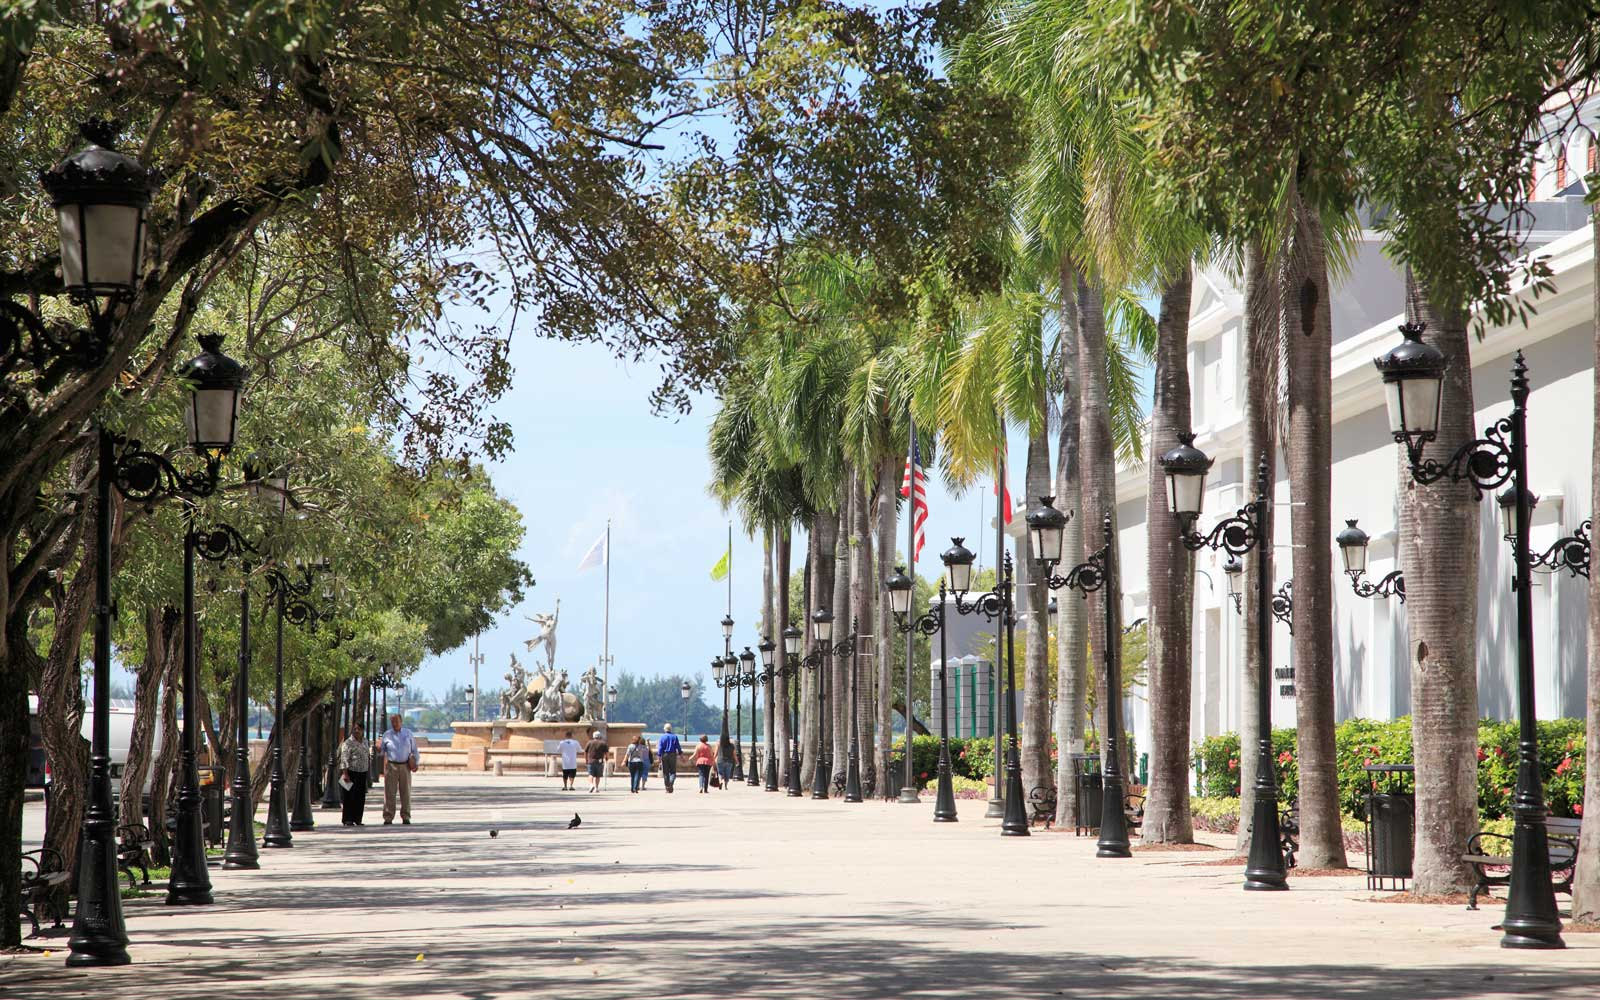 Paseo de la Princesa (Walkway of the Princess), Old San Juan